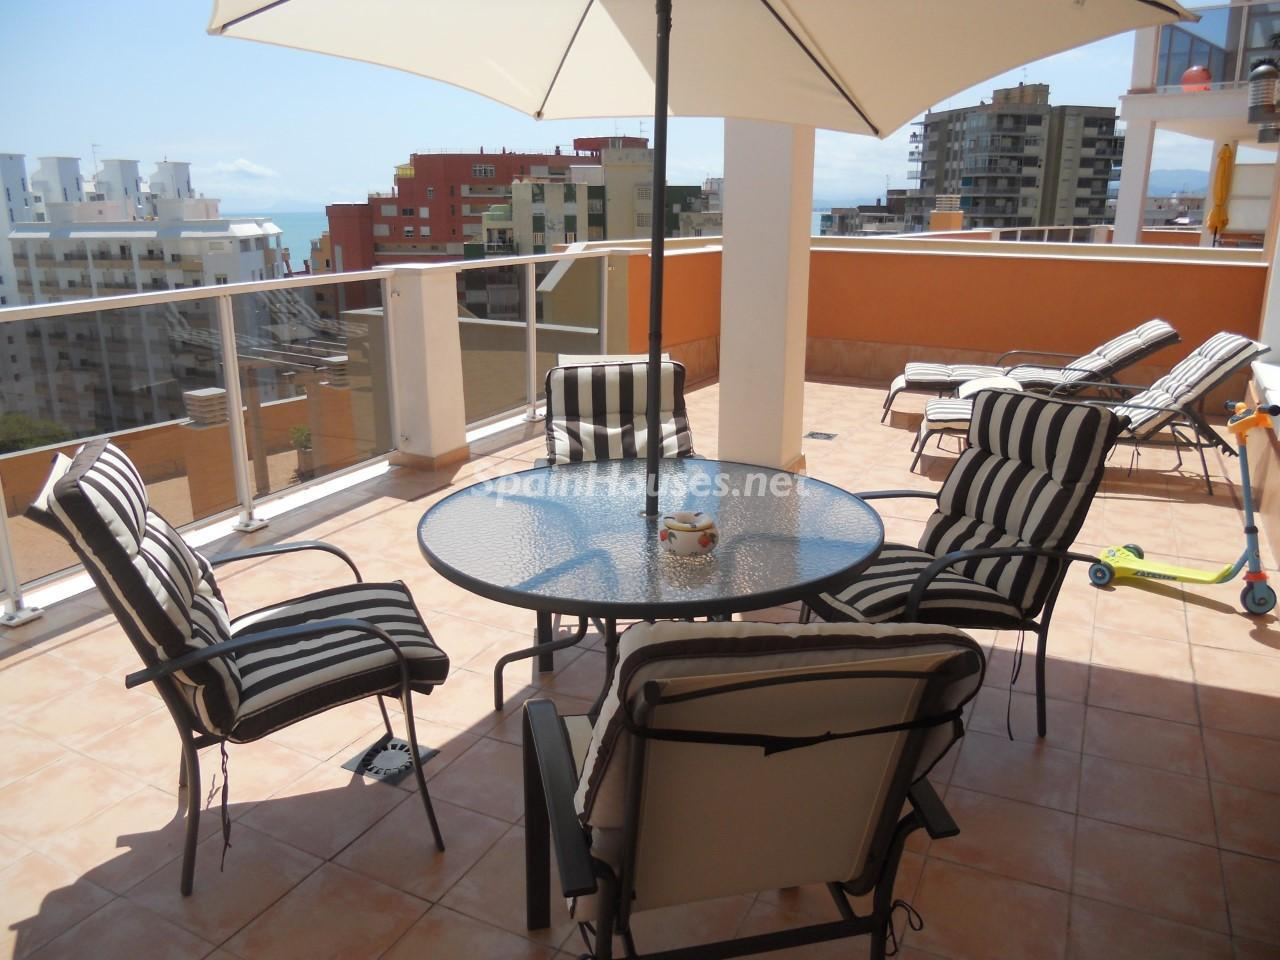 Apartment for sale in Cullera